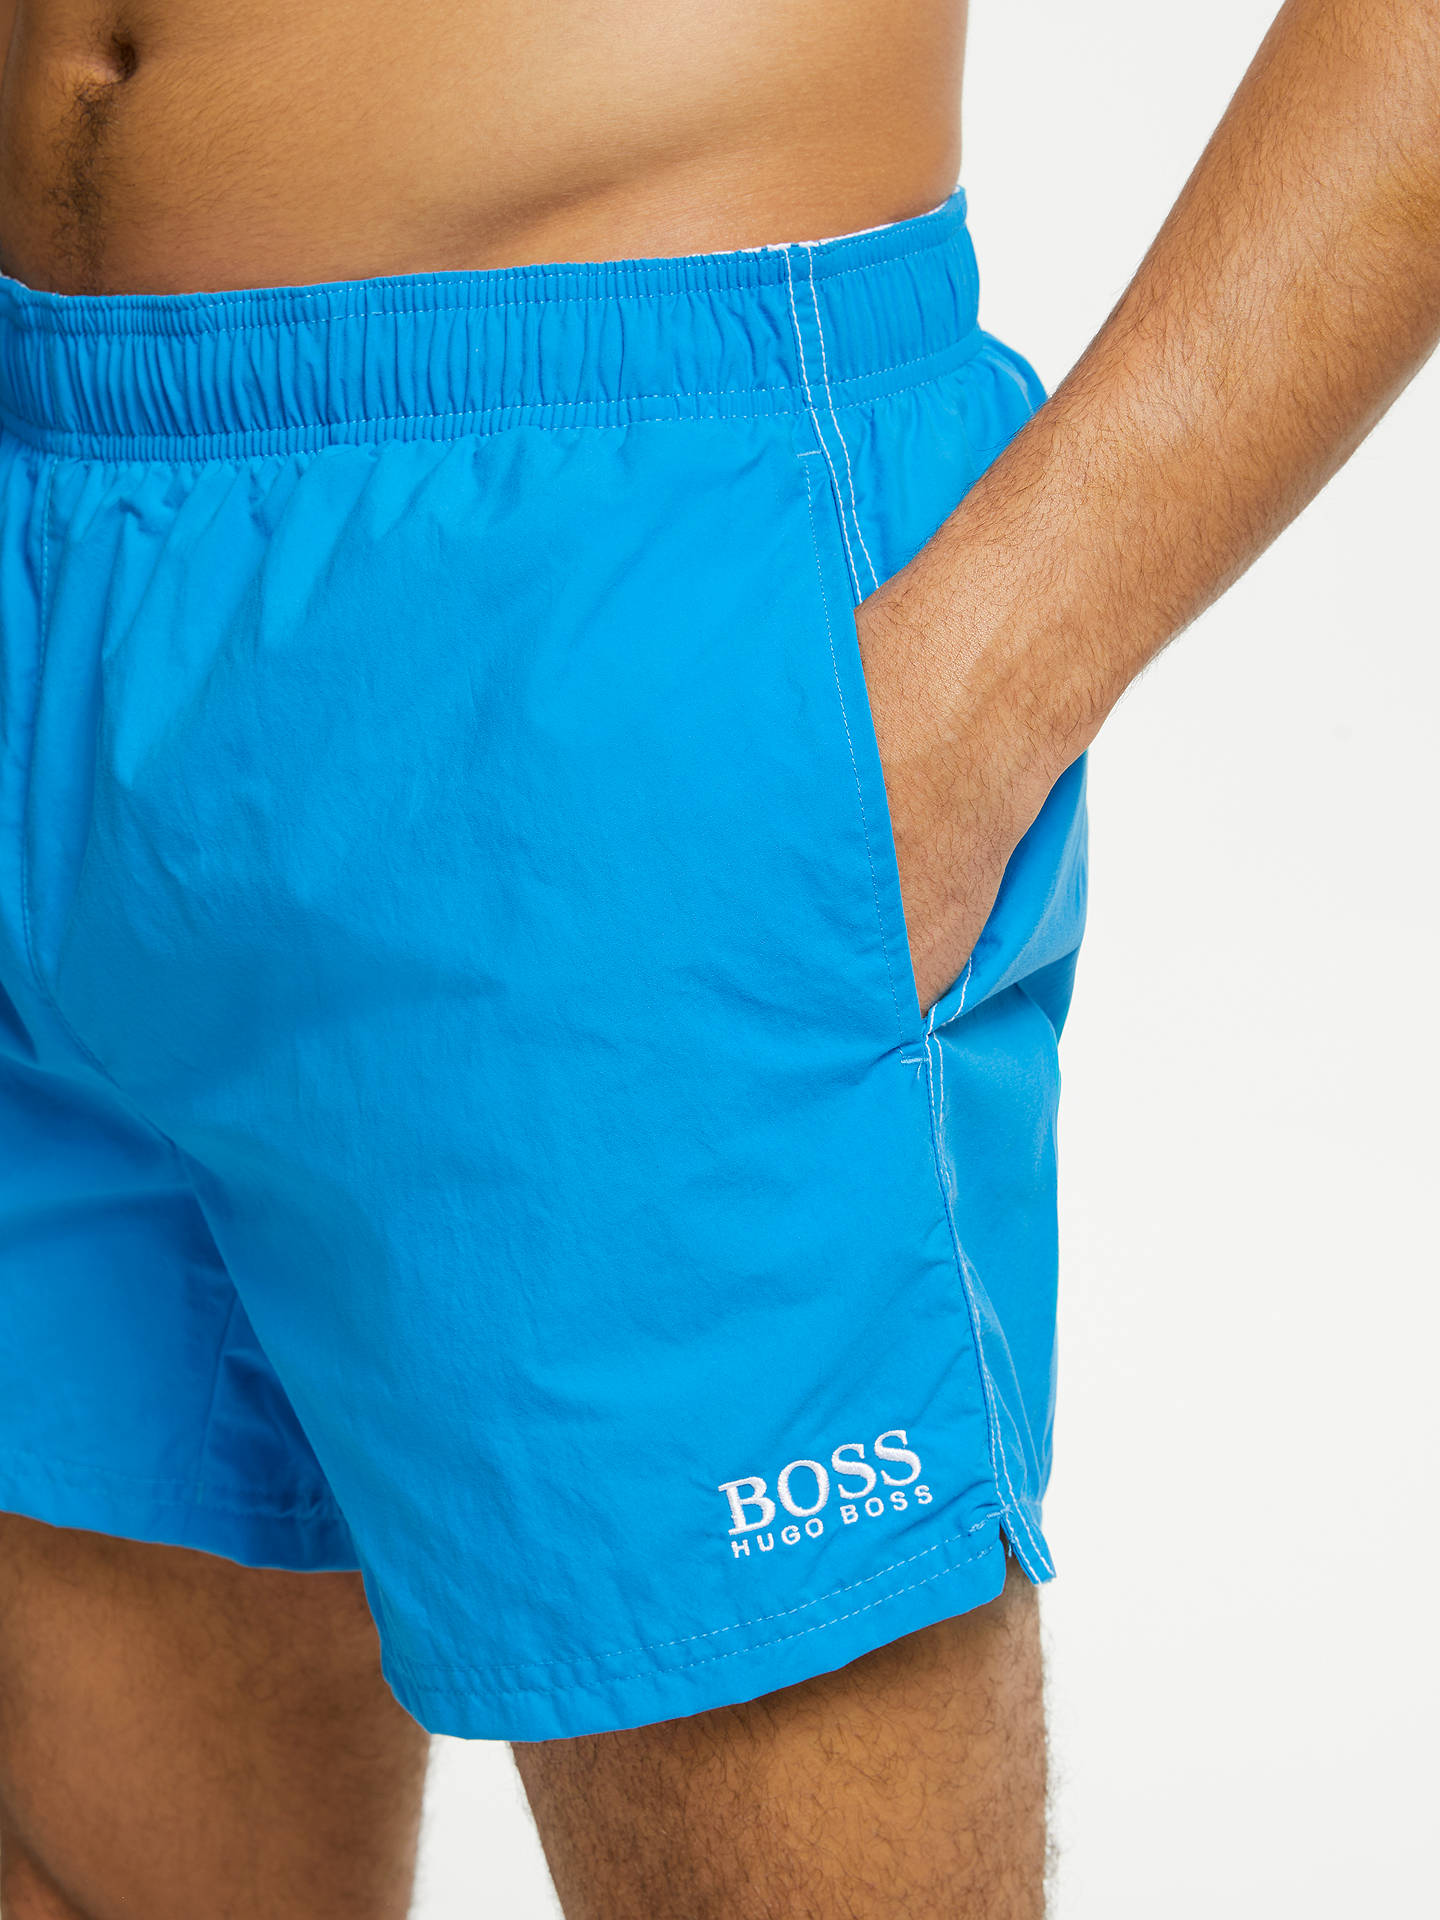 d256f18d5 ... Buy BOSS Perch Swim Shorts, Blue, L Online at johnlewis.com ...